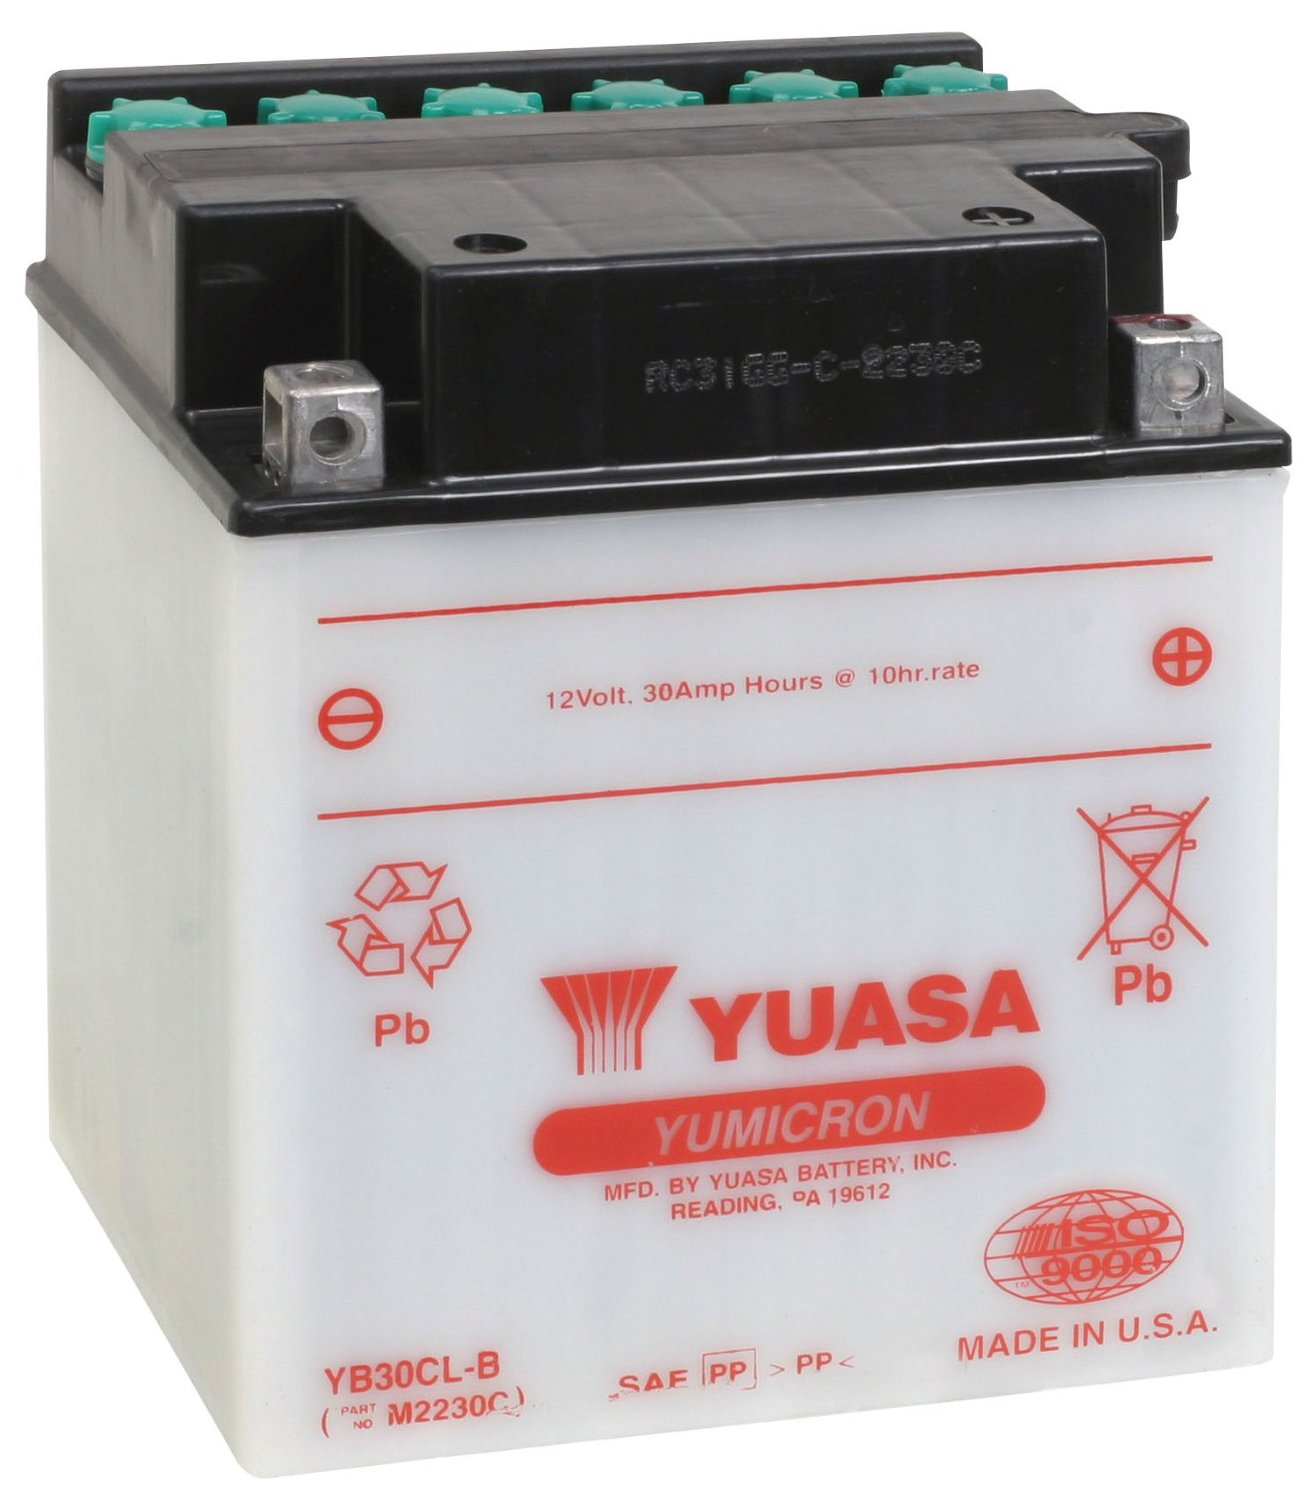 Get it delivered to your door - Yuasa YB30CL-B (USA) - 2450 (EGP)